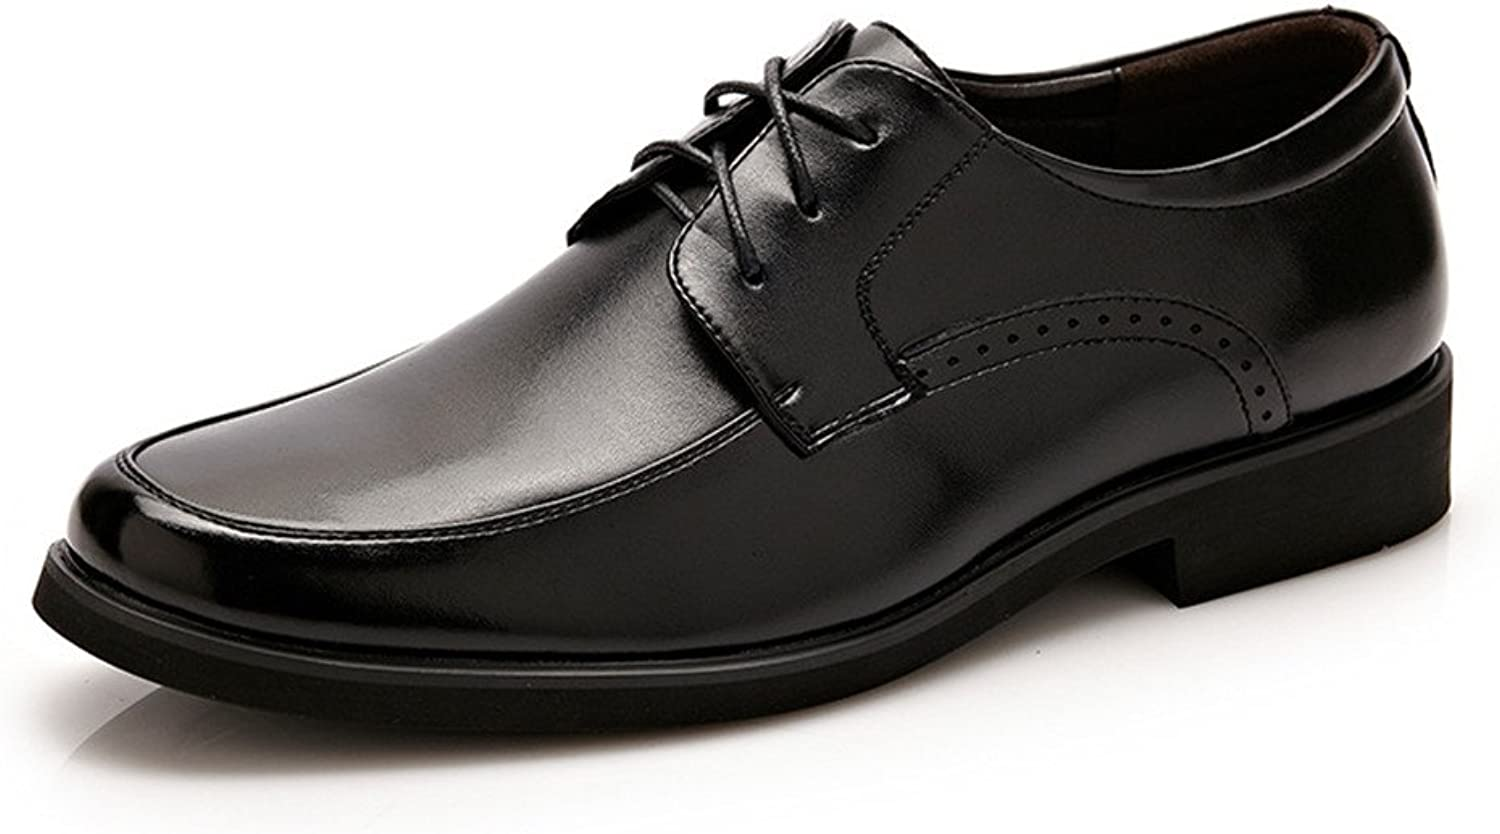 XIANGBAO-Personality Simple Men's PU Leather Business Oxfords Lace Up Formal Wedding Dress shoes